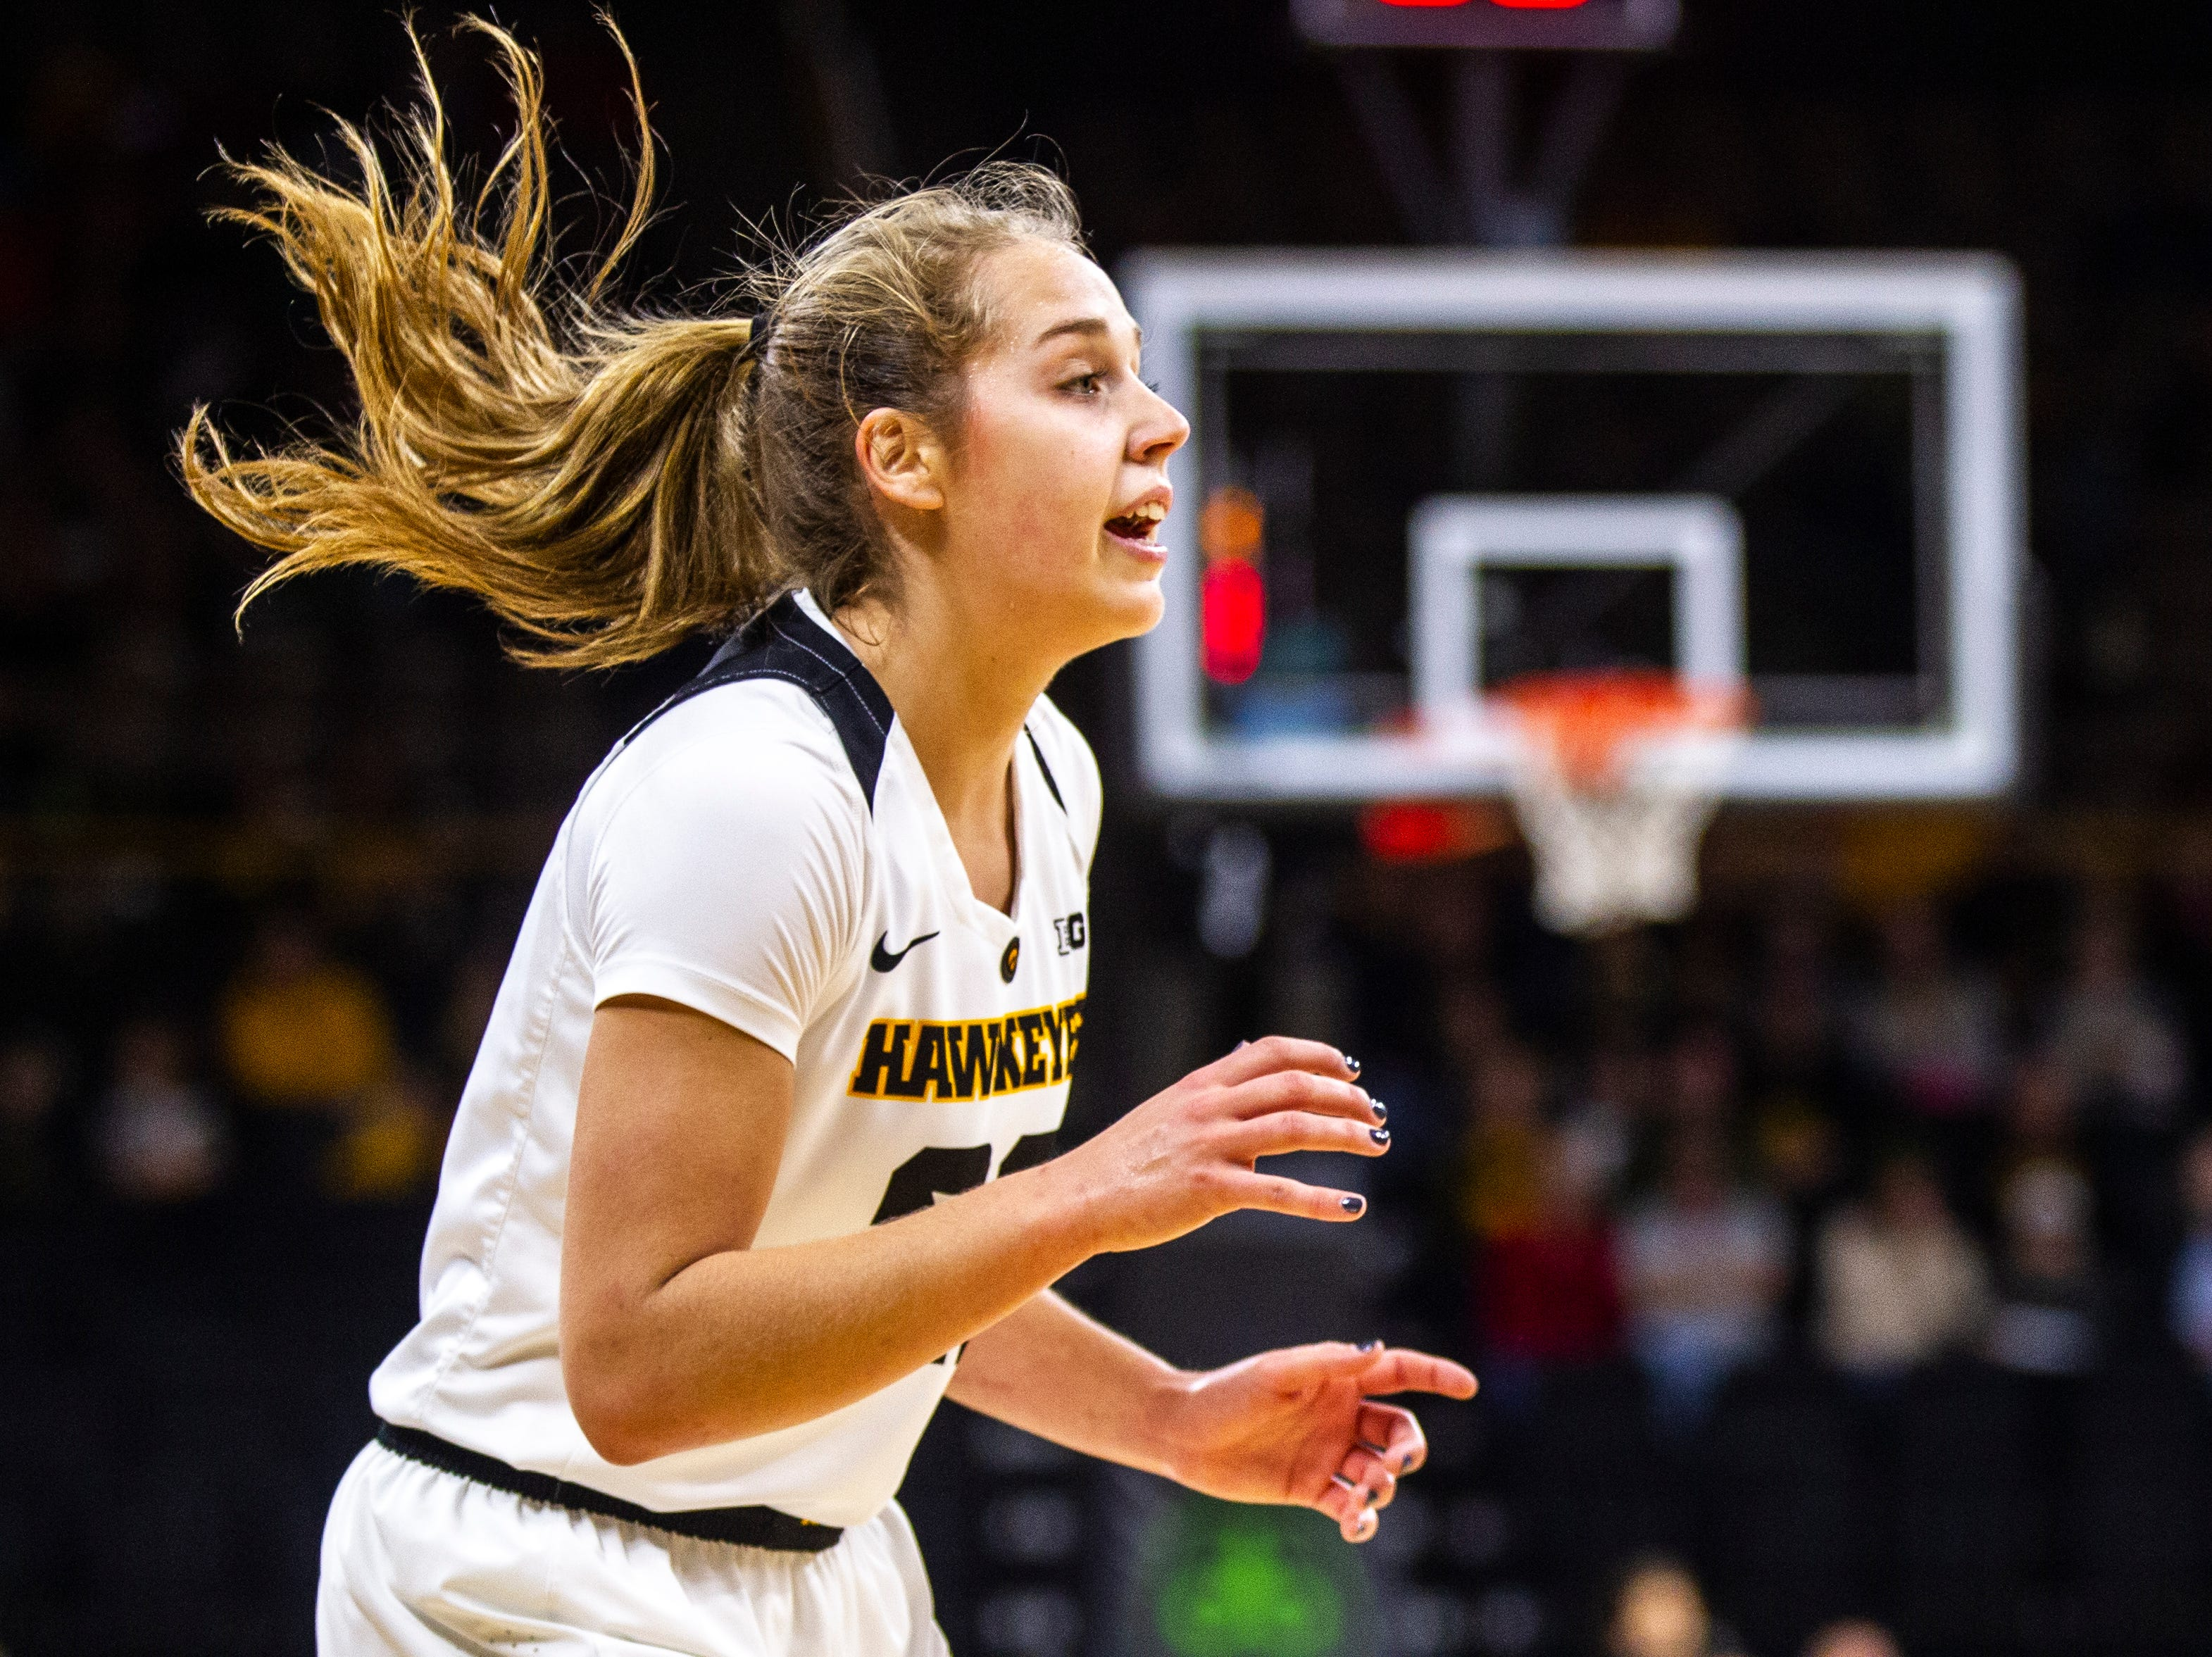 Iowa guard Kathleen Doyle (22) calls out to teammates during a NCAA Big Ten Conference women's basketball game on Sunday, Jan. 27, 2019, at Carver-Hawkeye Arena in Iowa City, Iowa.